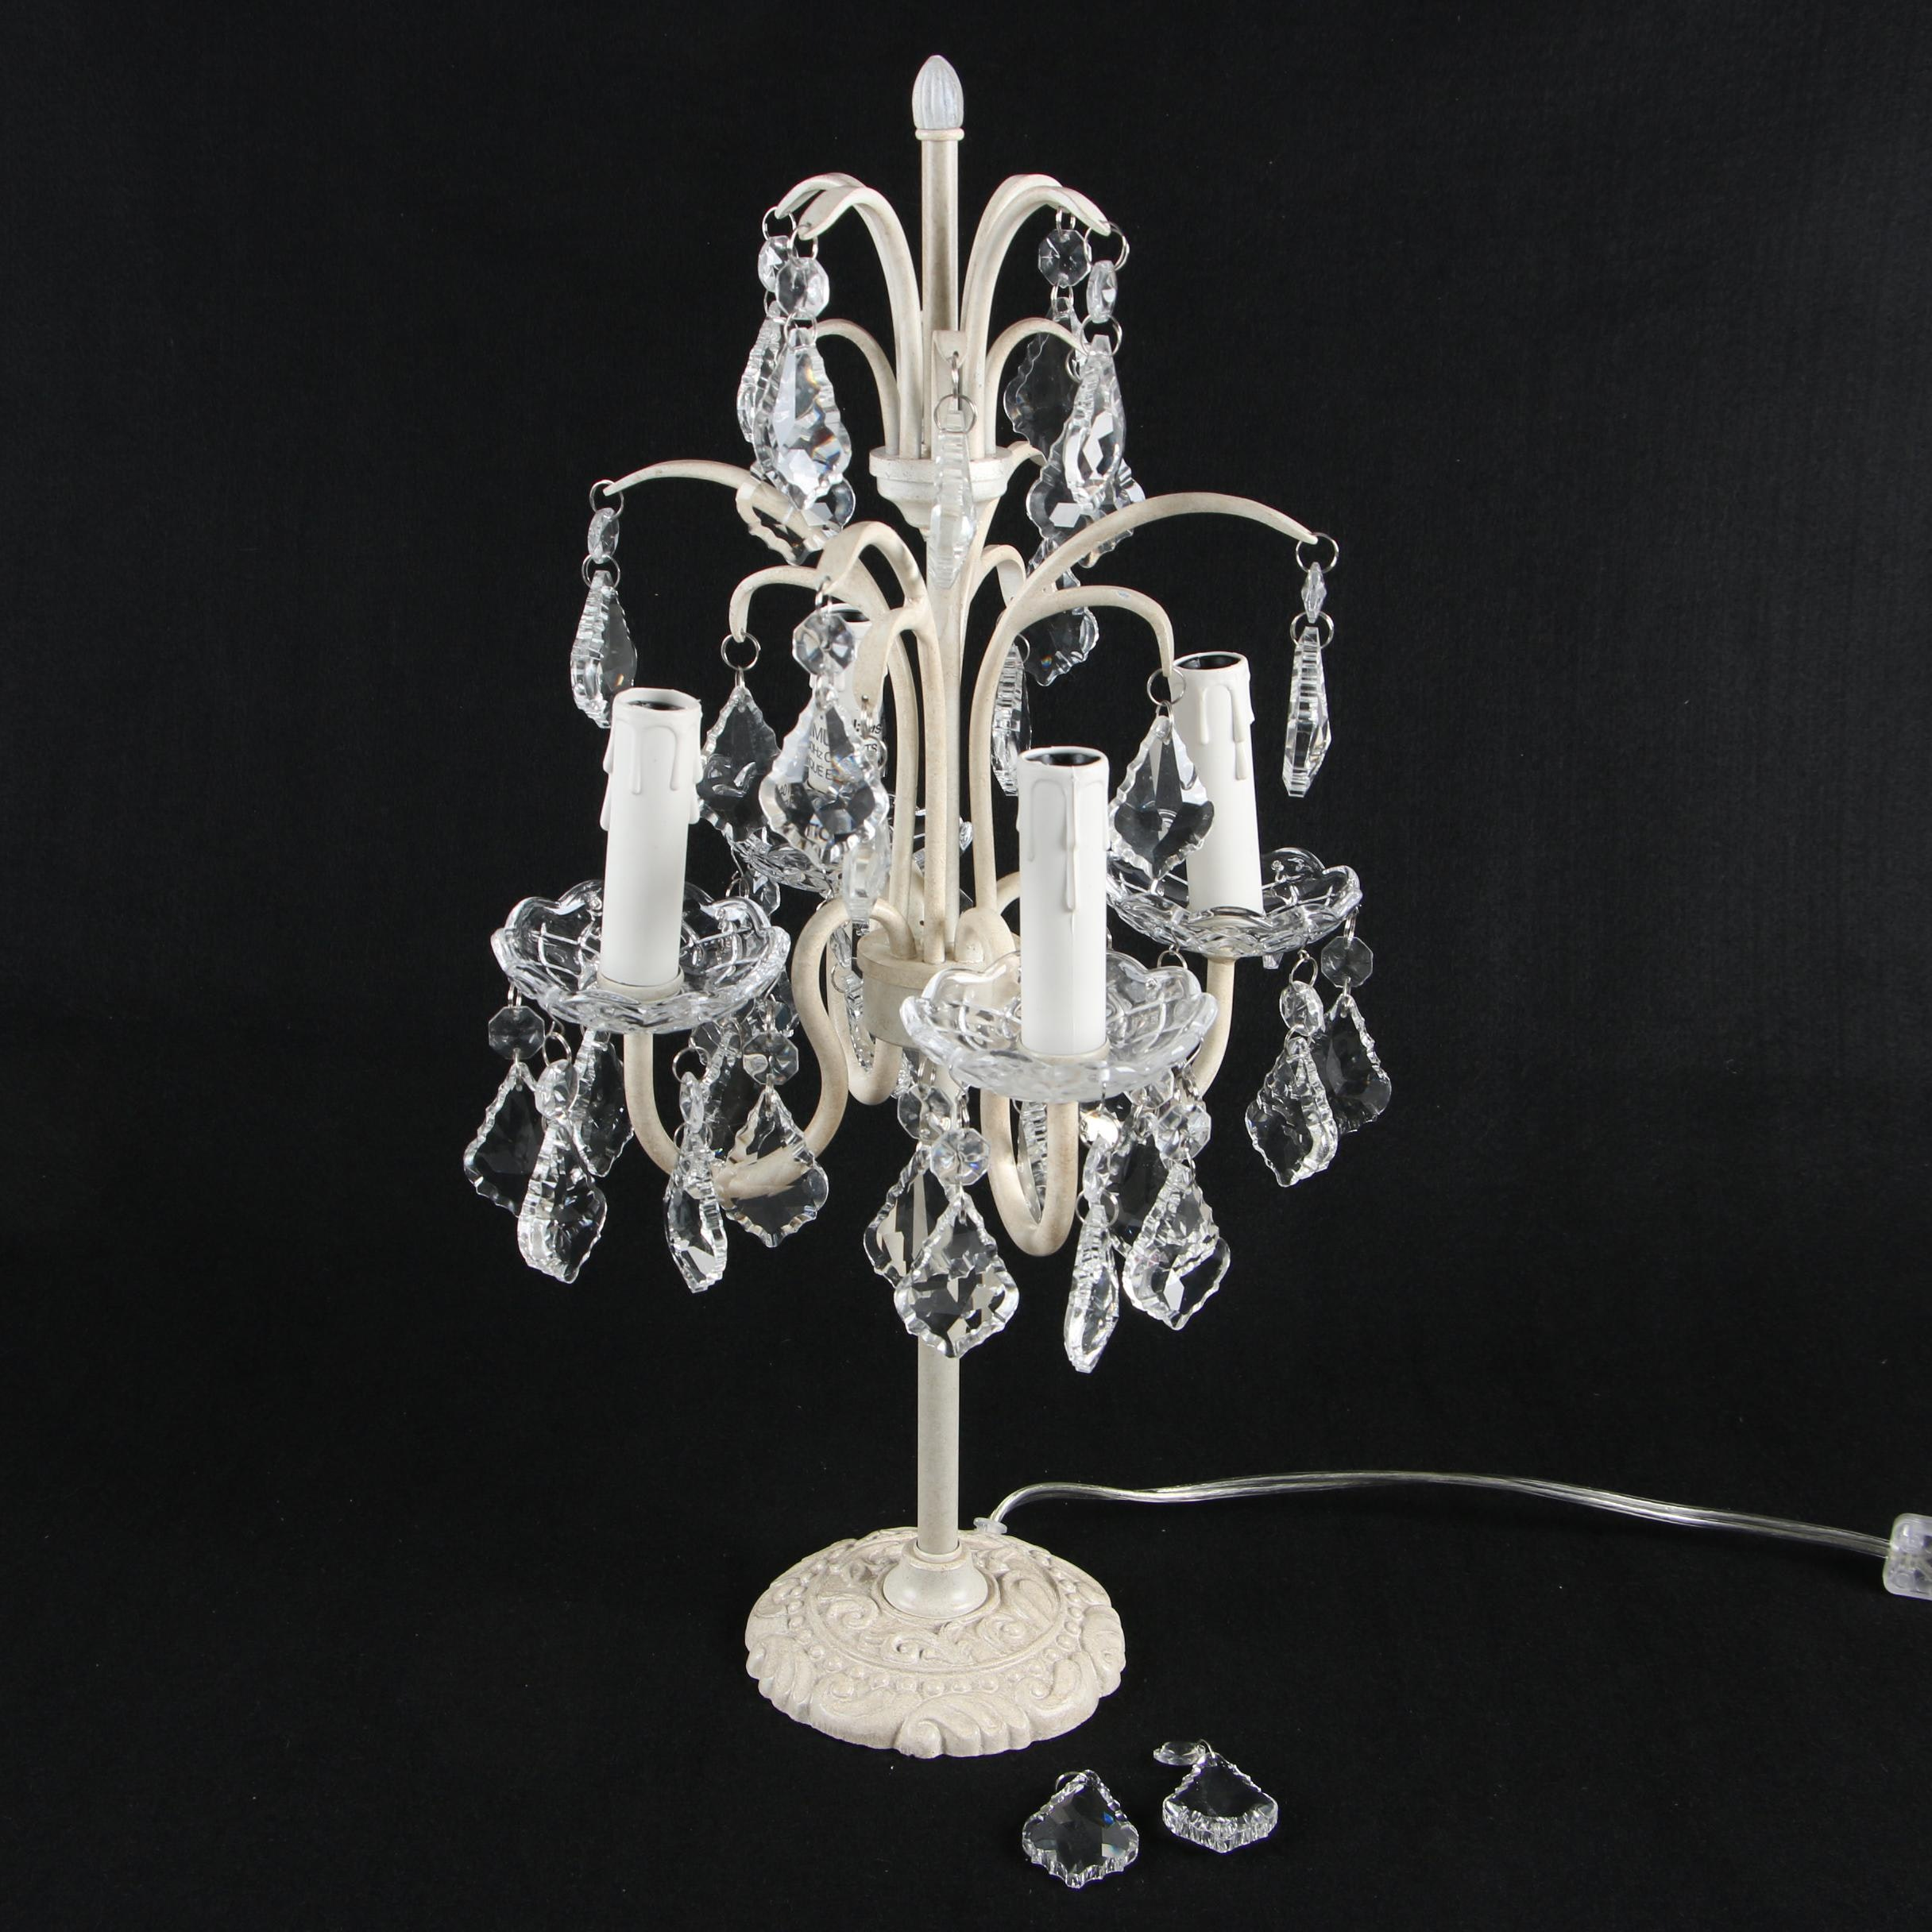 Baby & Child Restoration Hardware Wrought Iron Table Lamp with Crystal Drops